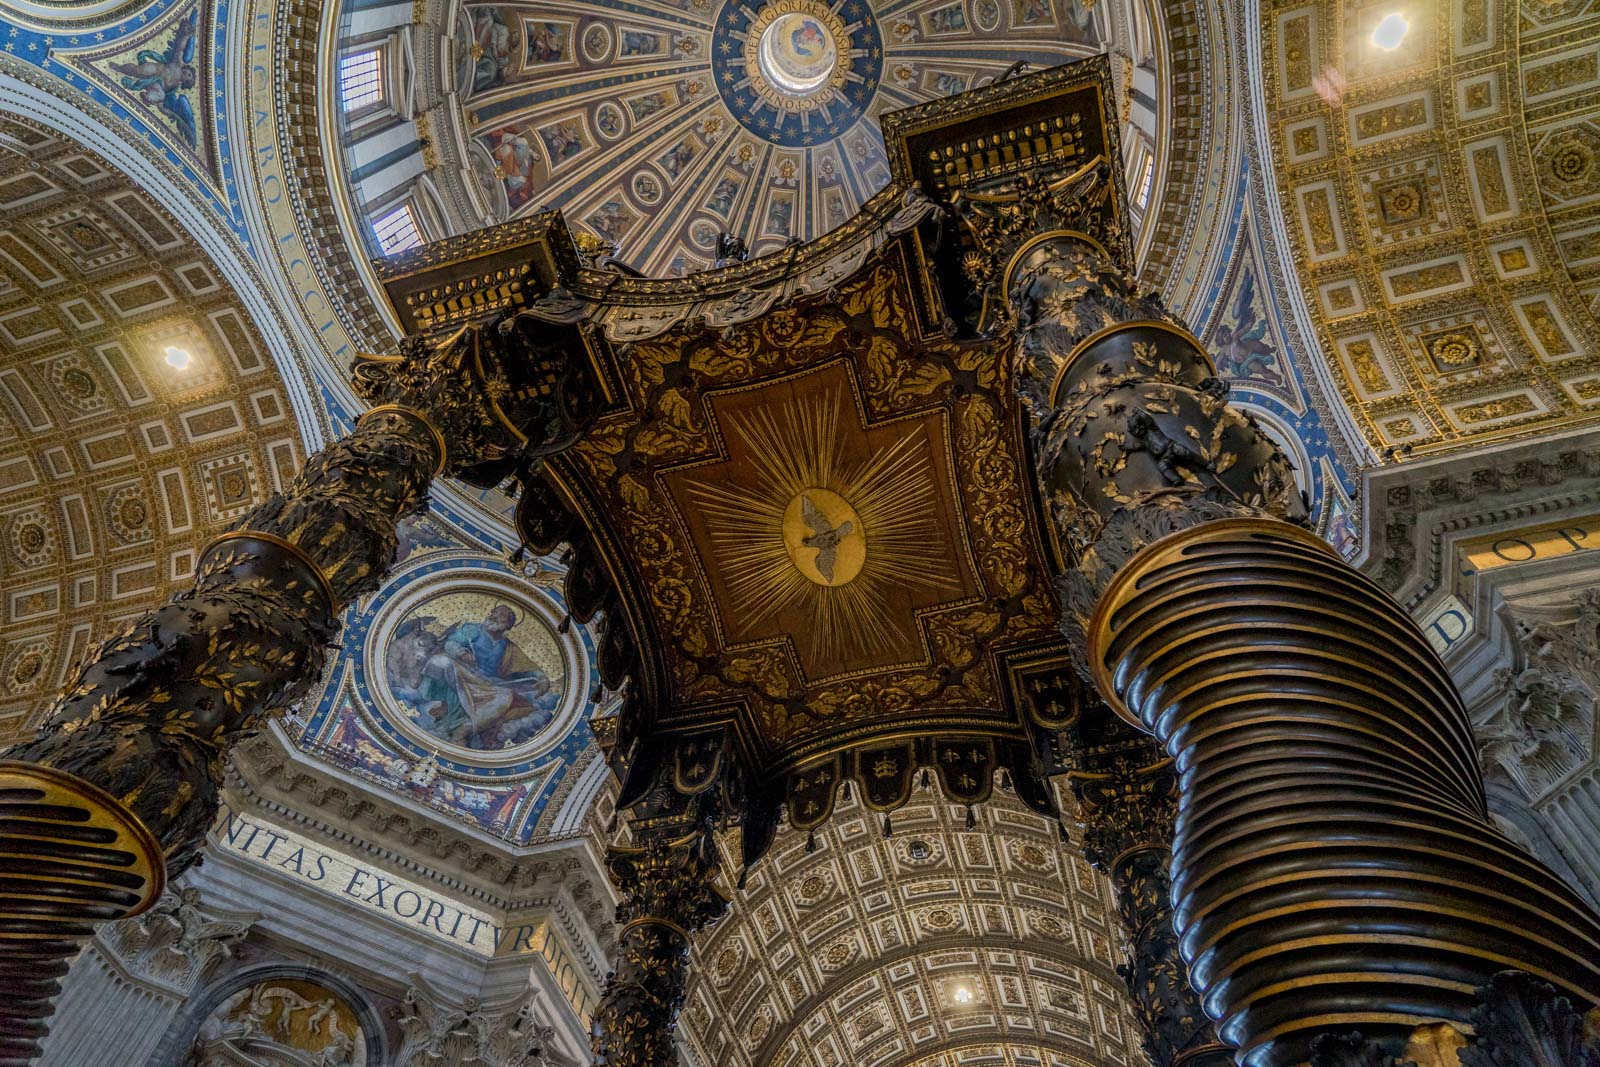 St Peters Basilica, Vatican City